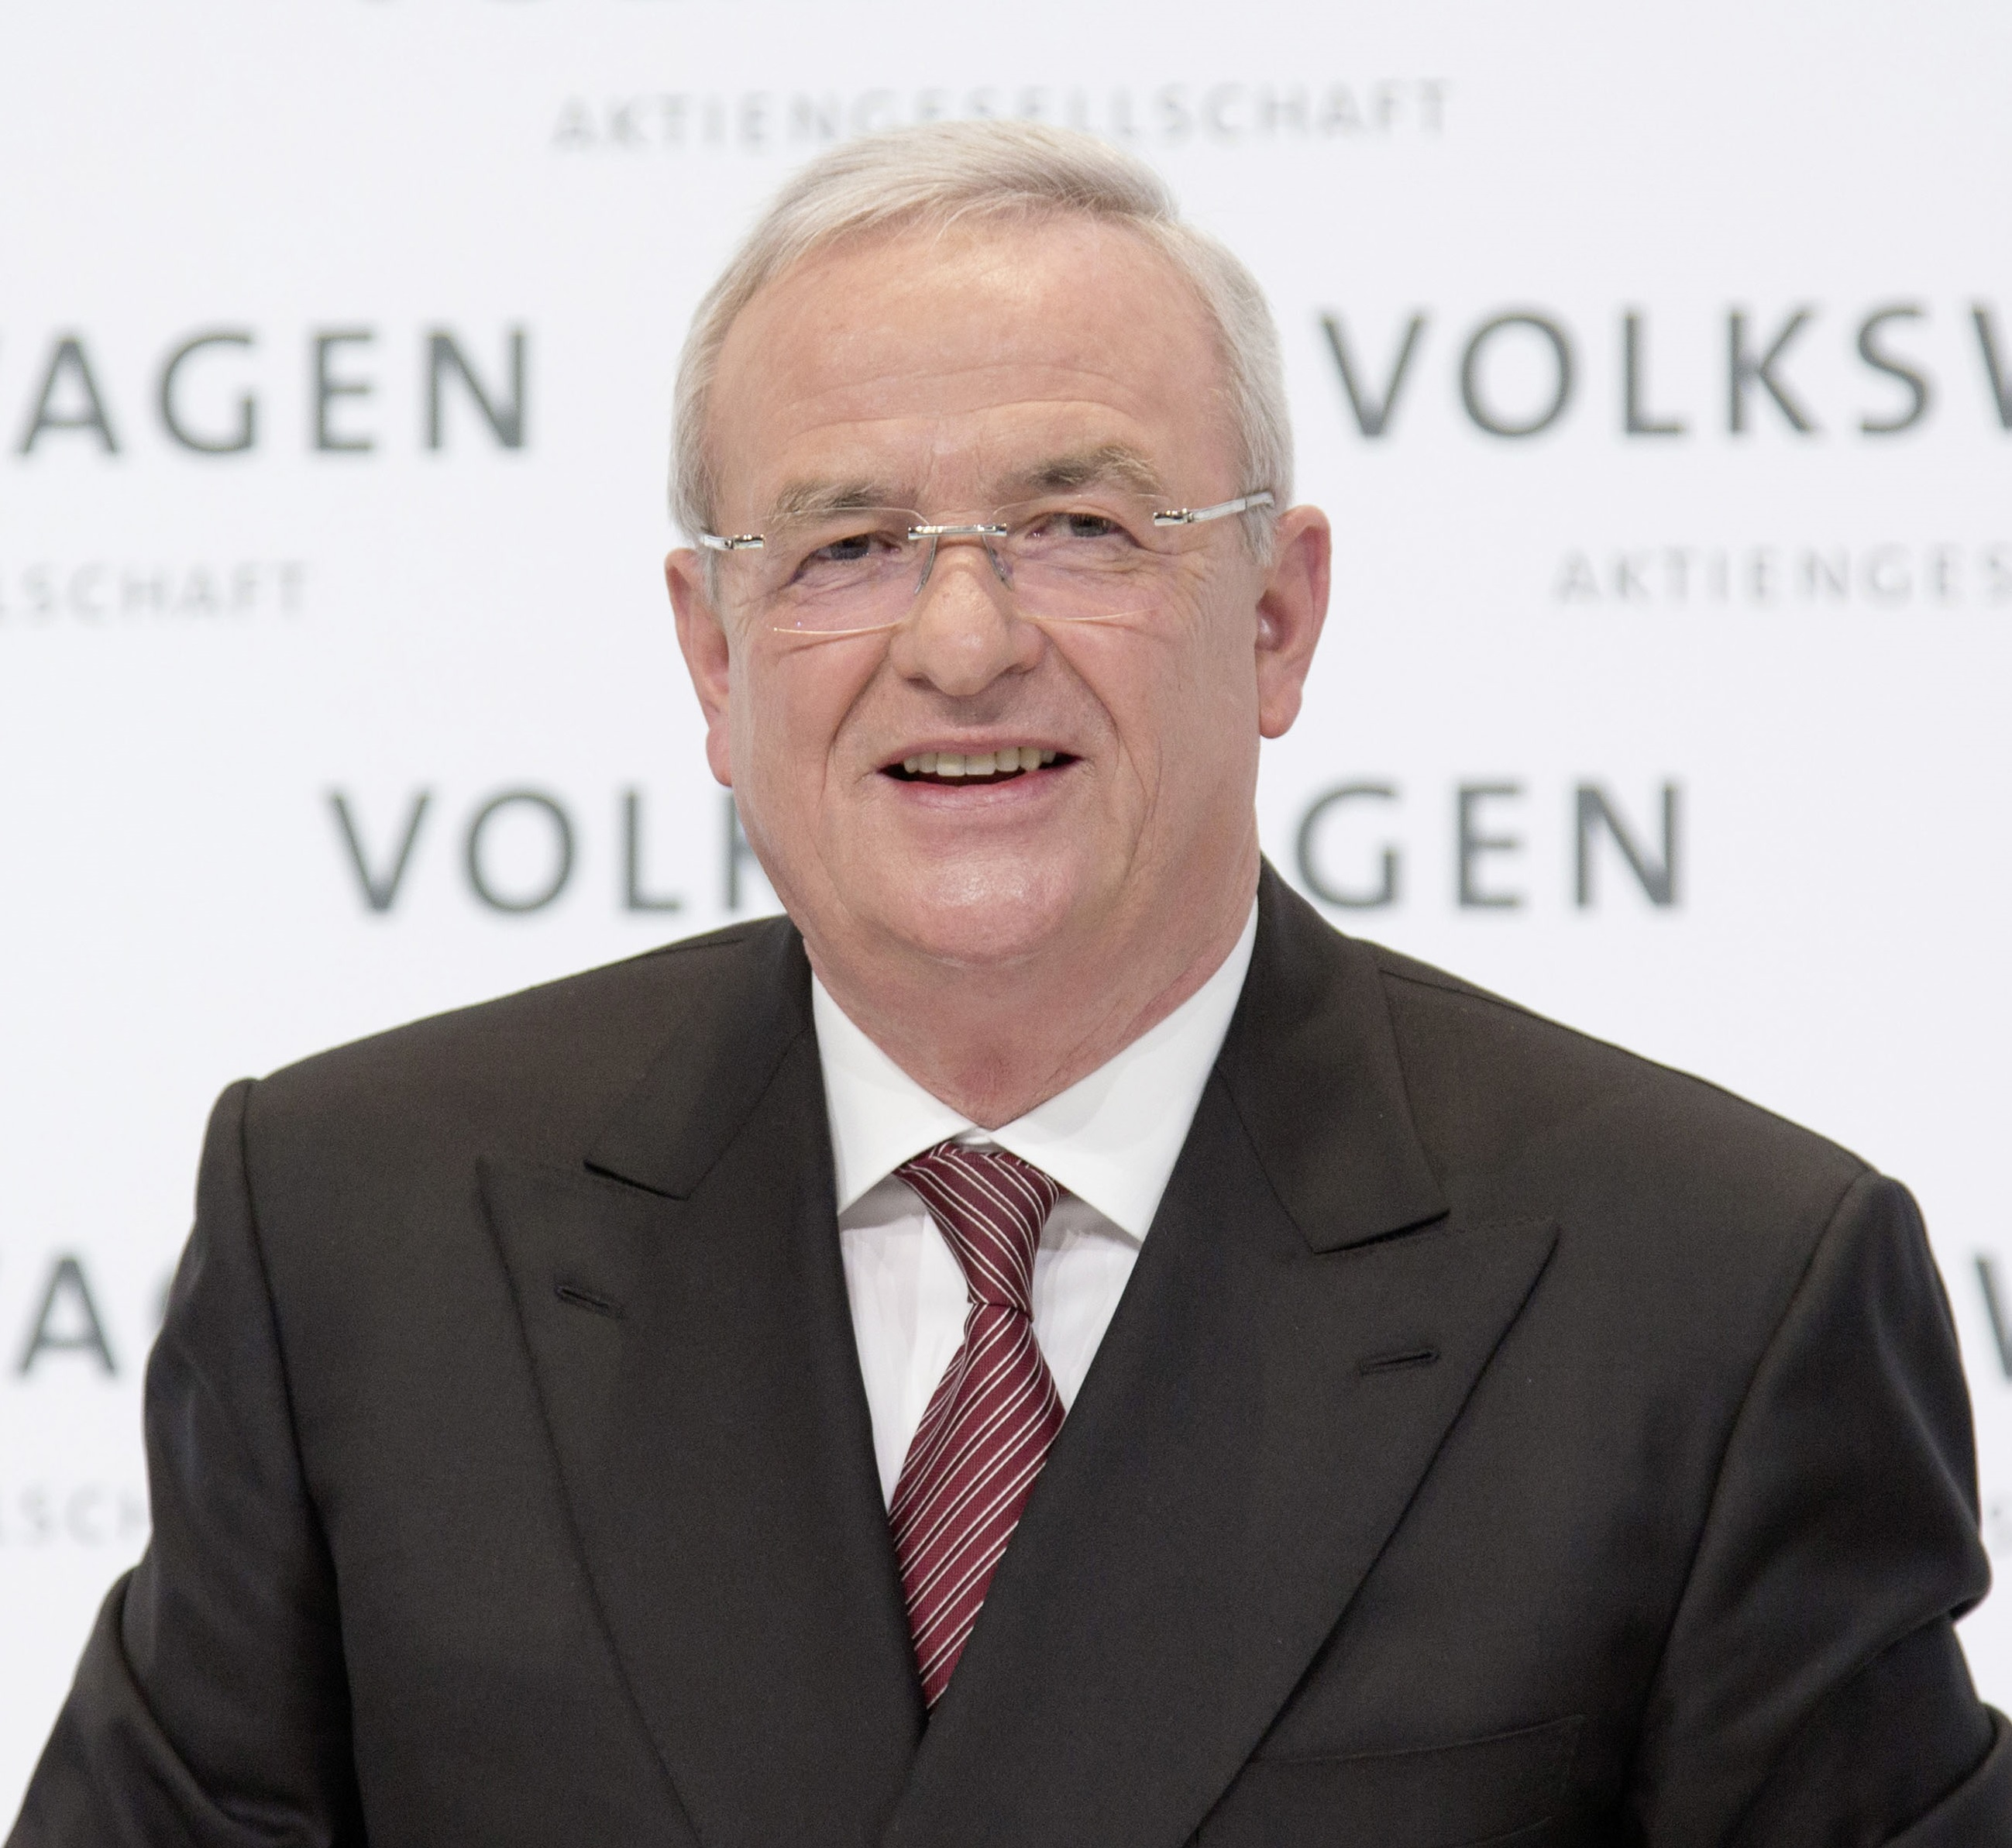 The 71-year old son of father (?) and mother(?) Martin Winterkorn in 2018 photo. Martin Winterkorn earned a  million dollar salary - leaving the net worth at 36 million in 2018